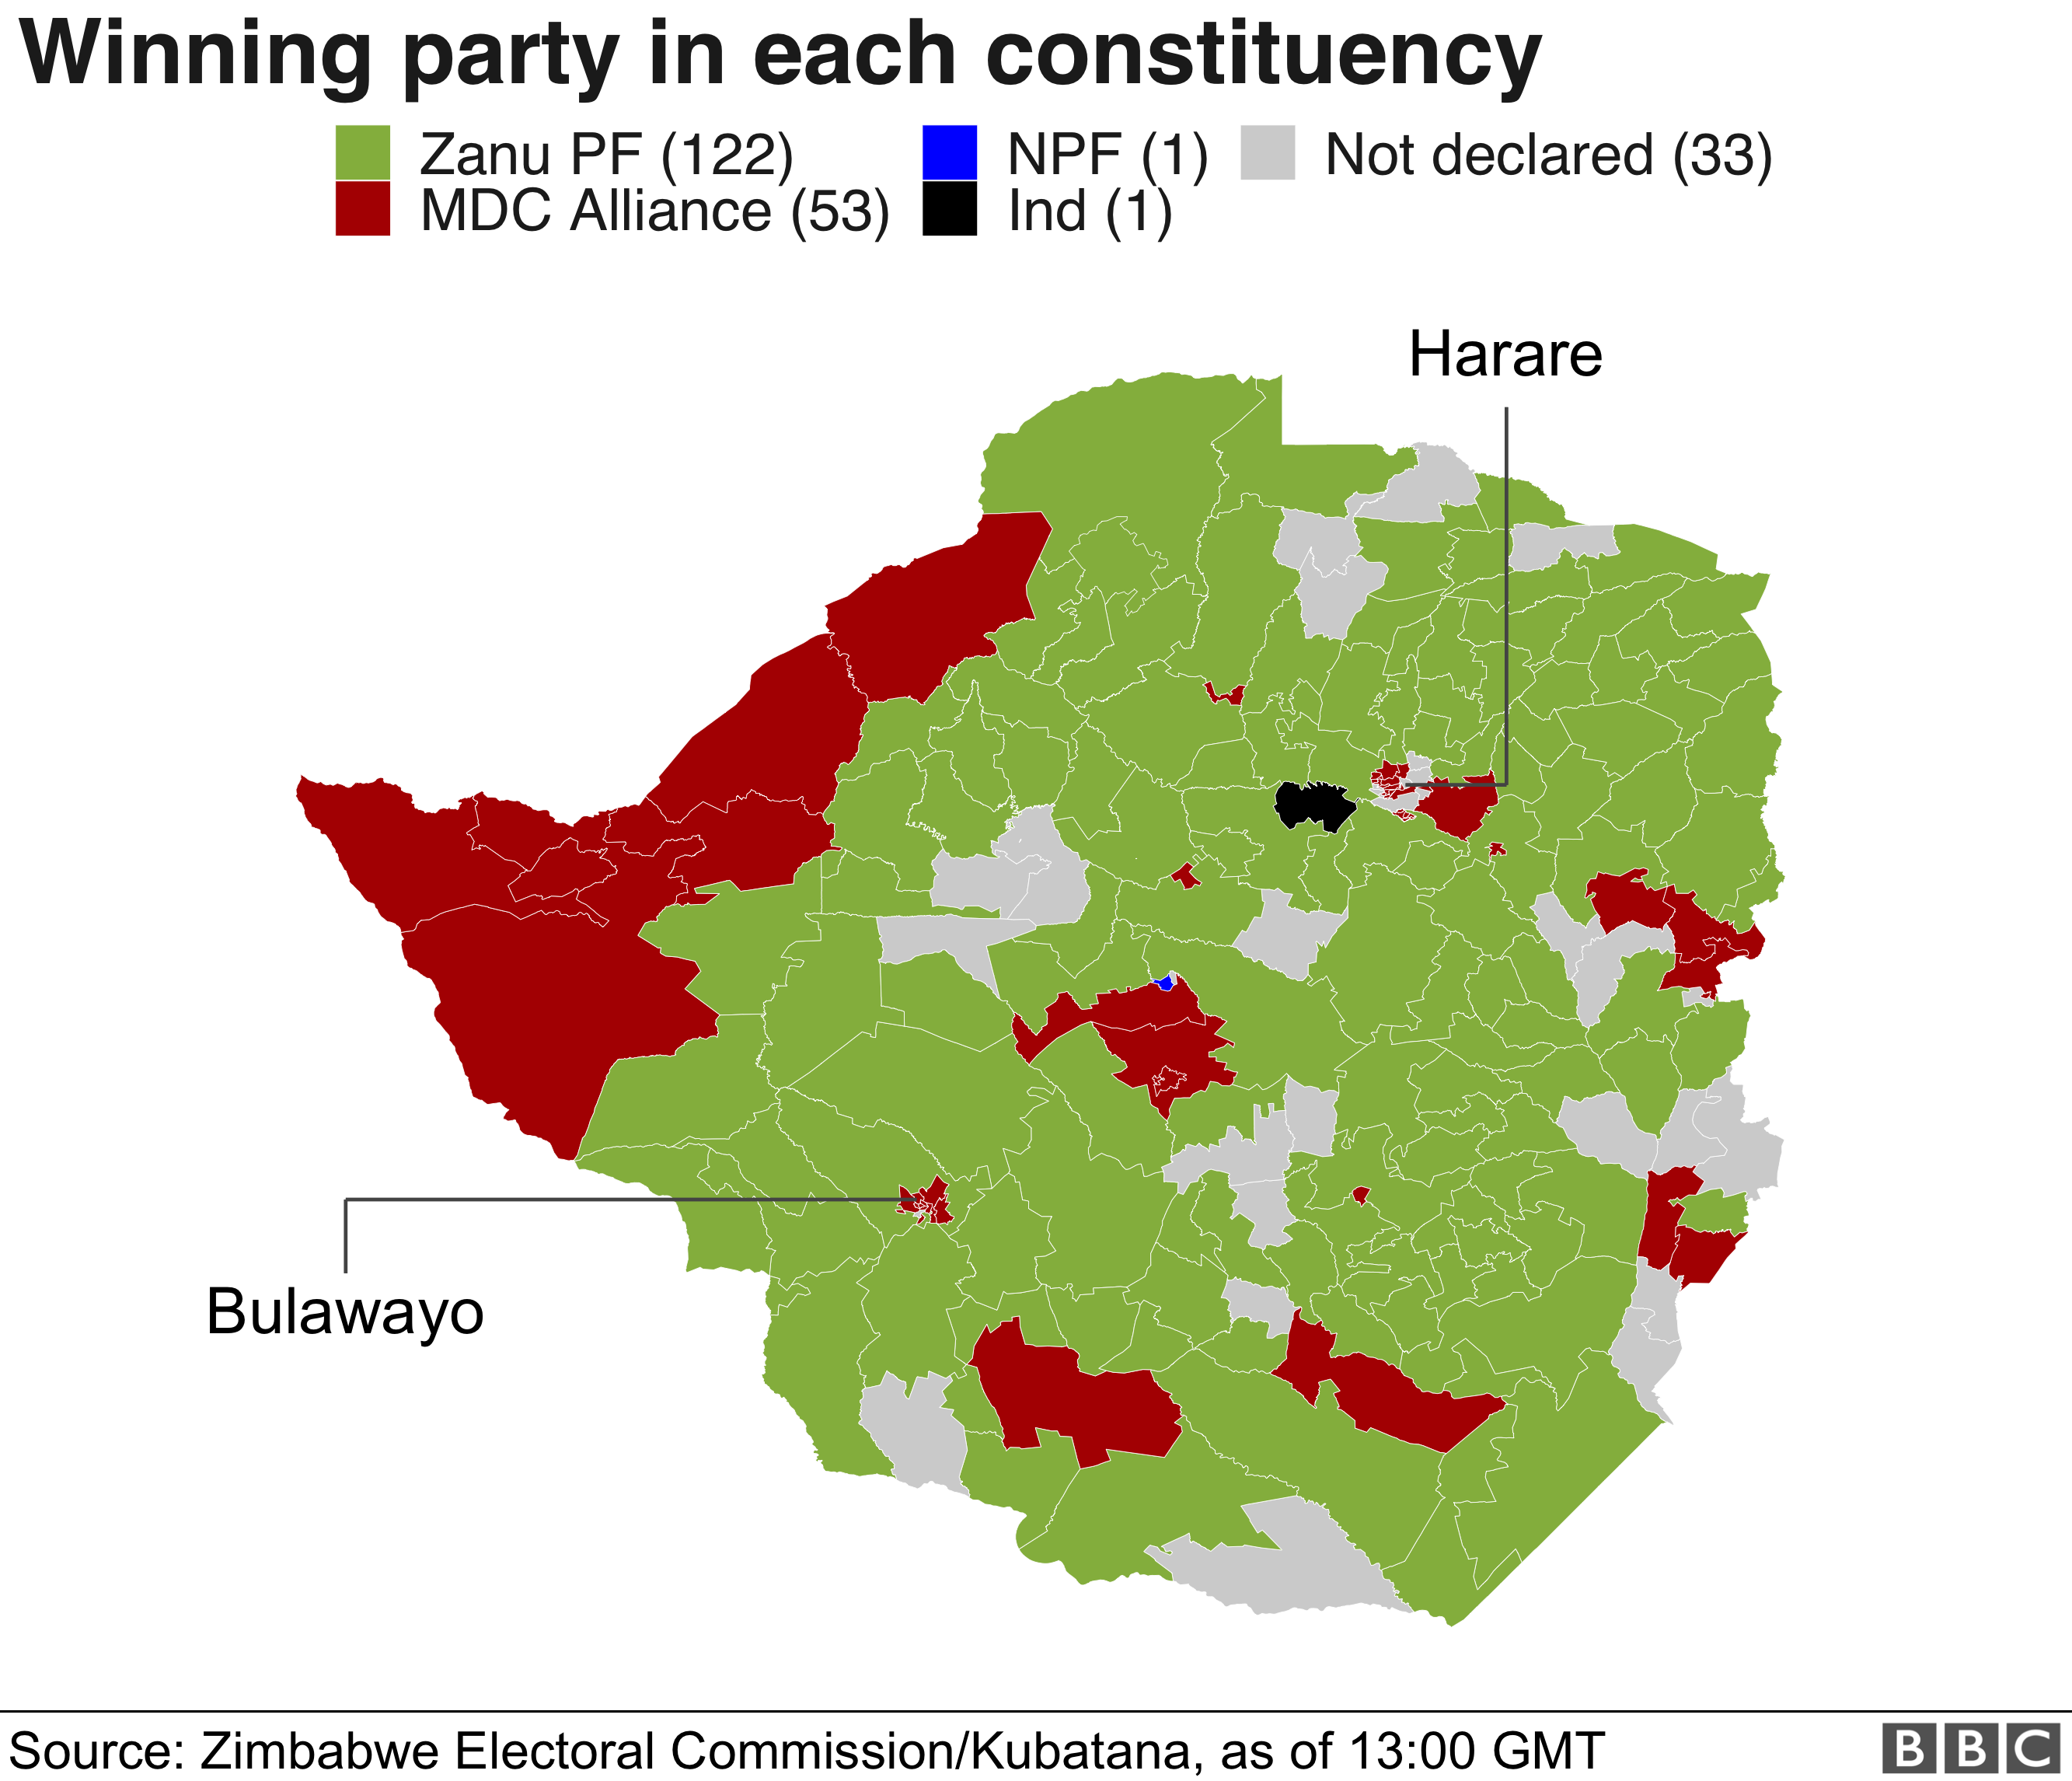 Zimbabwe election winners' map. MDC Alliance did better in the big cities, but Zanu PF dominated the rural areas